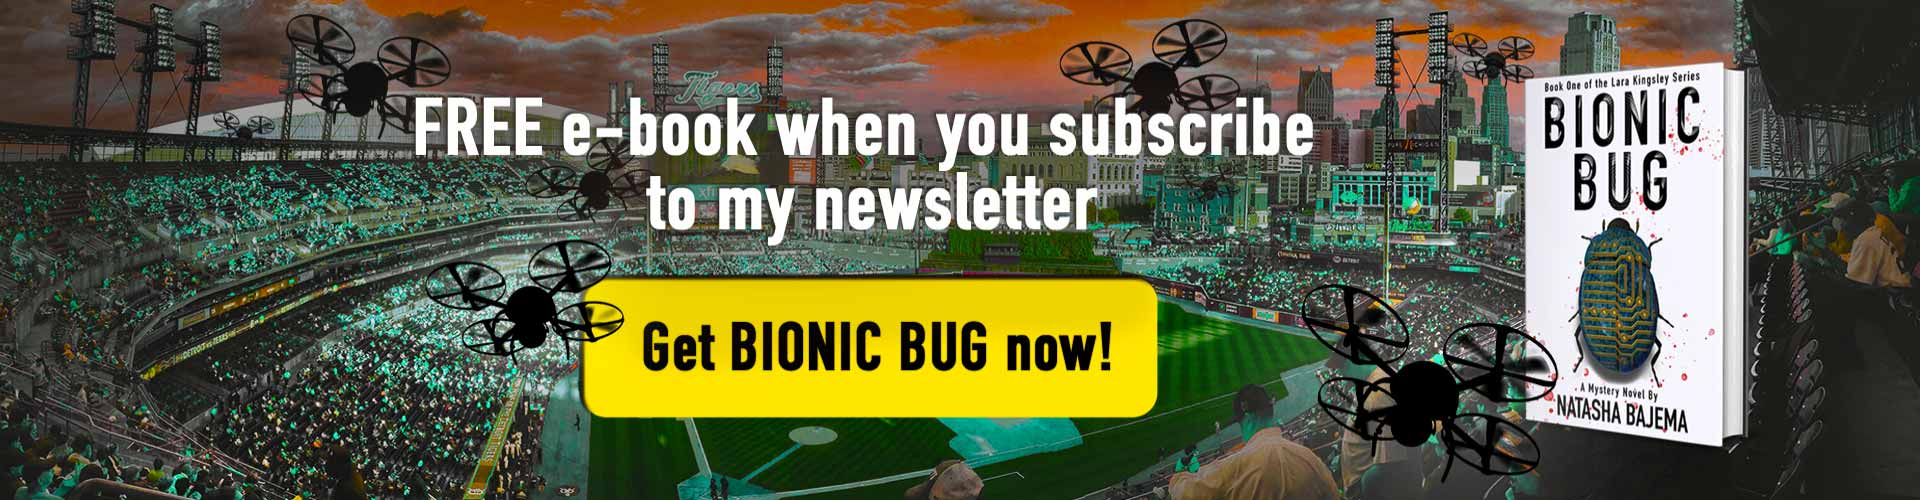 Get Bionic Bug for free